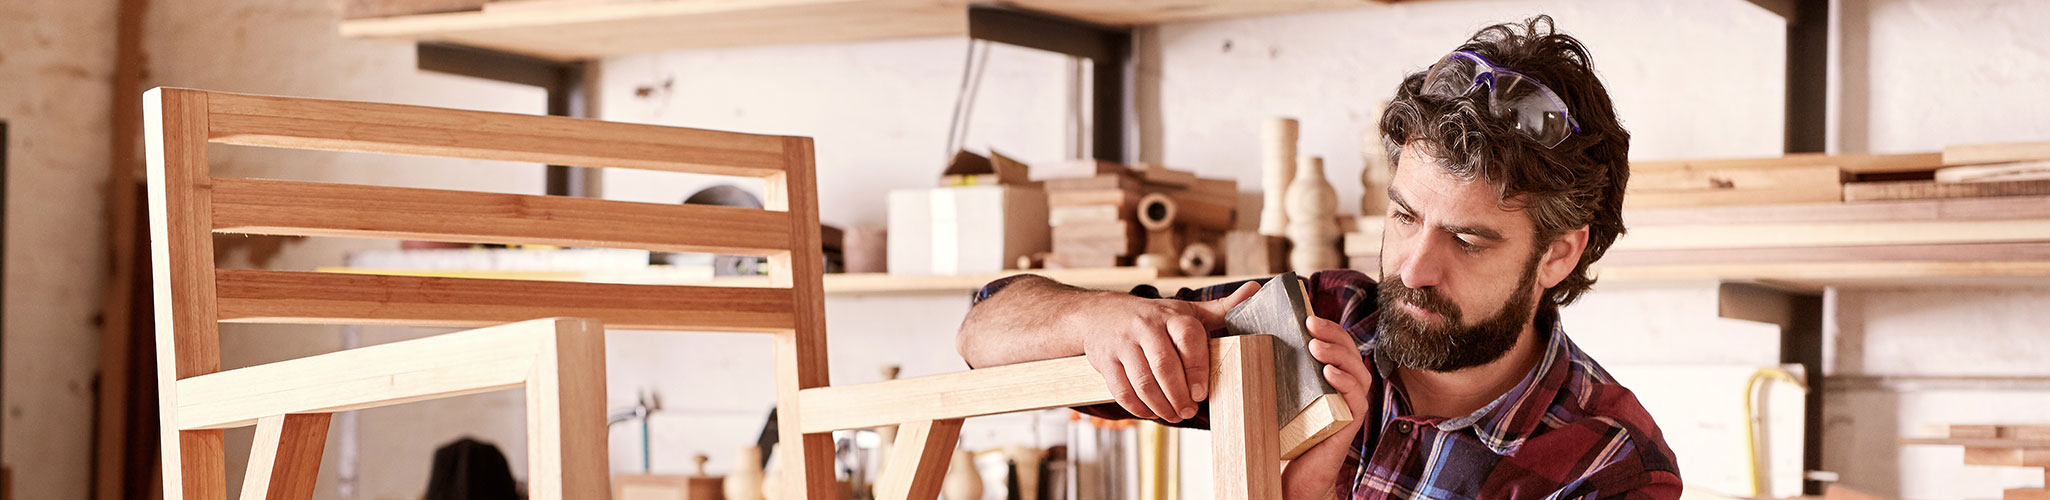 Bearded man building a chair in a workshop